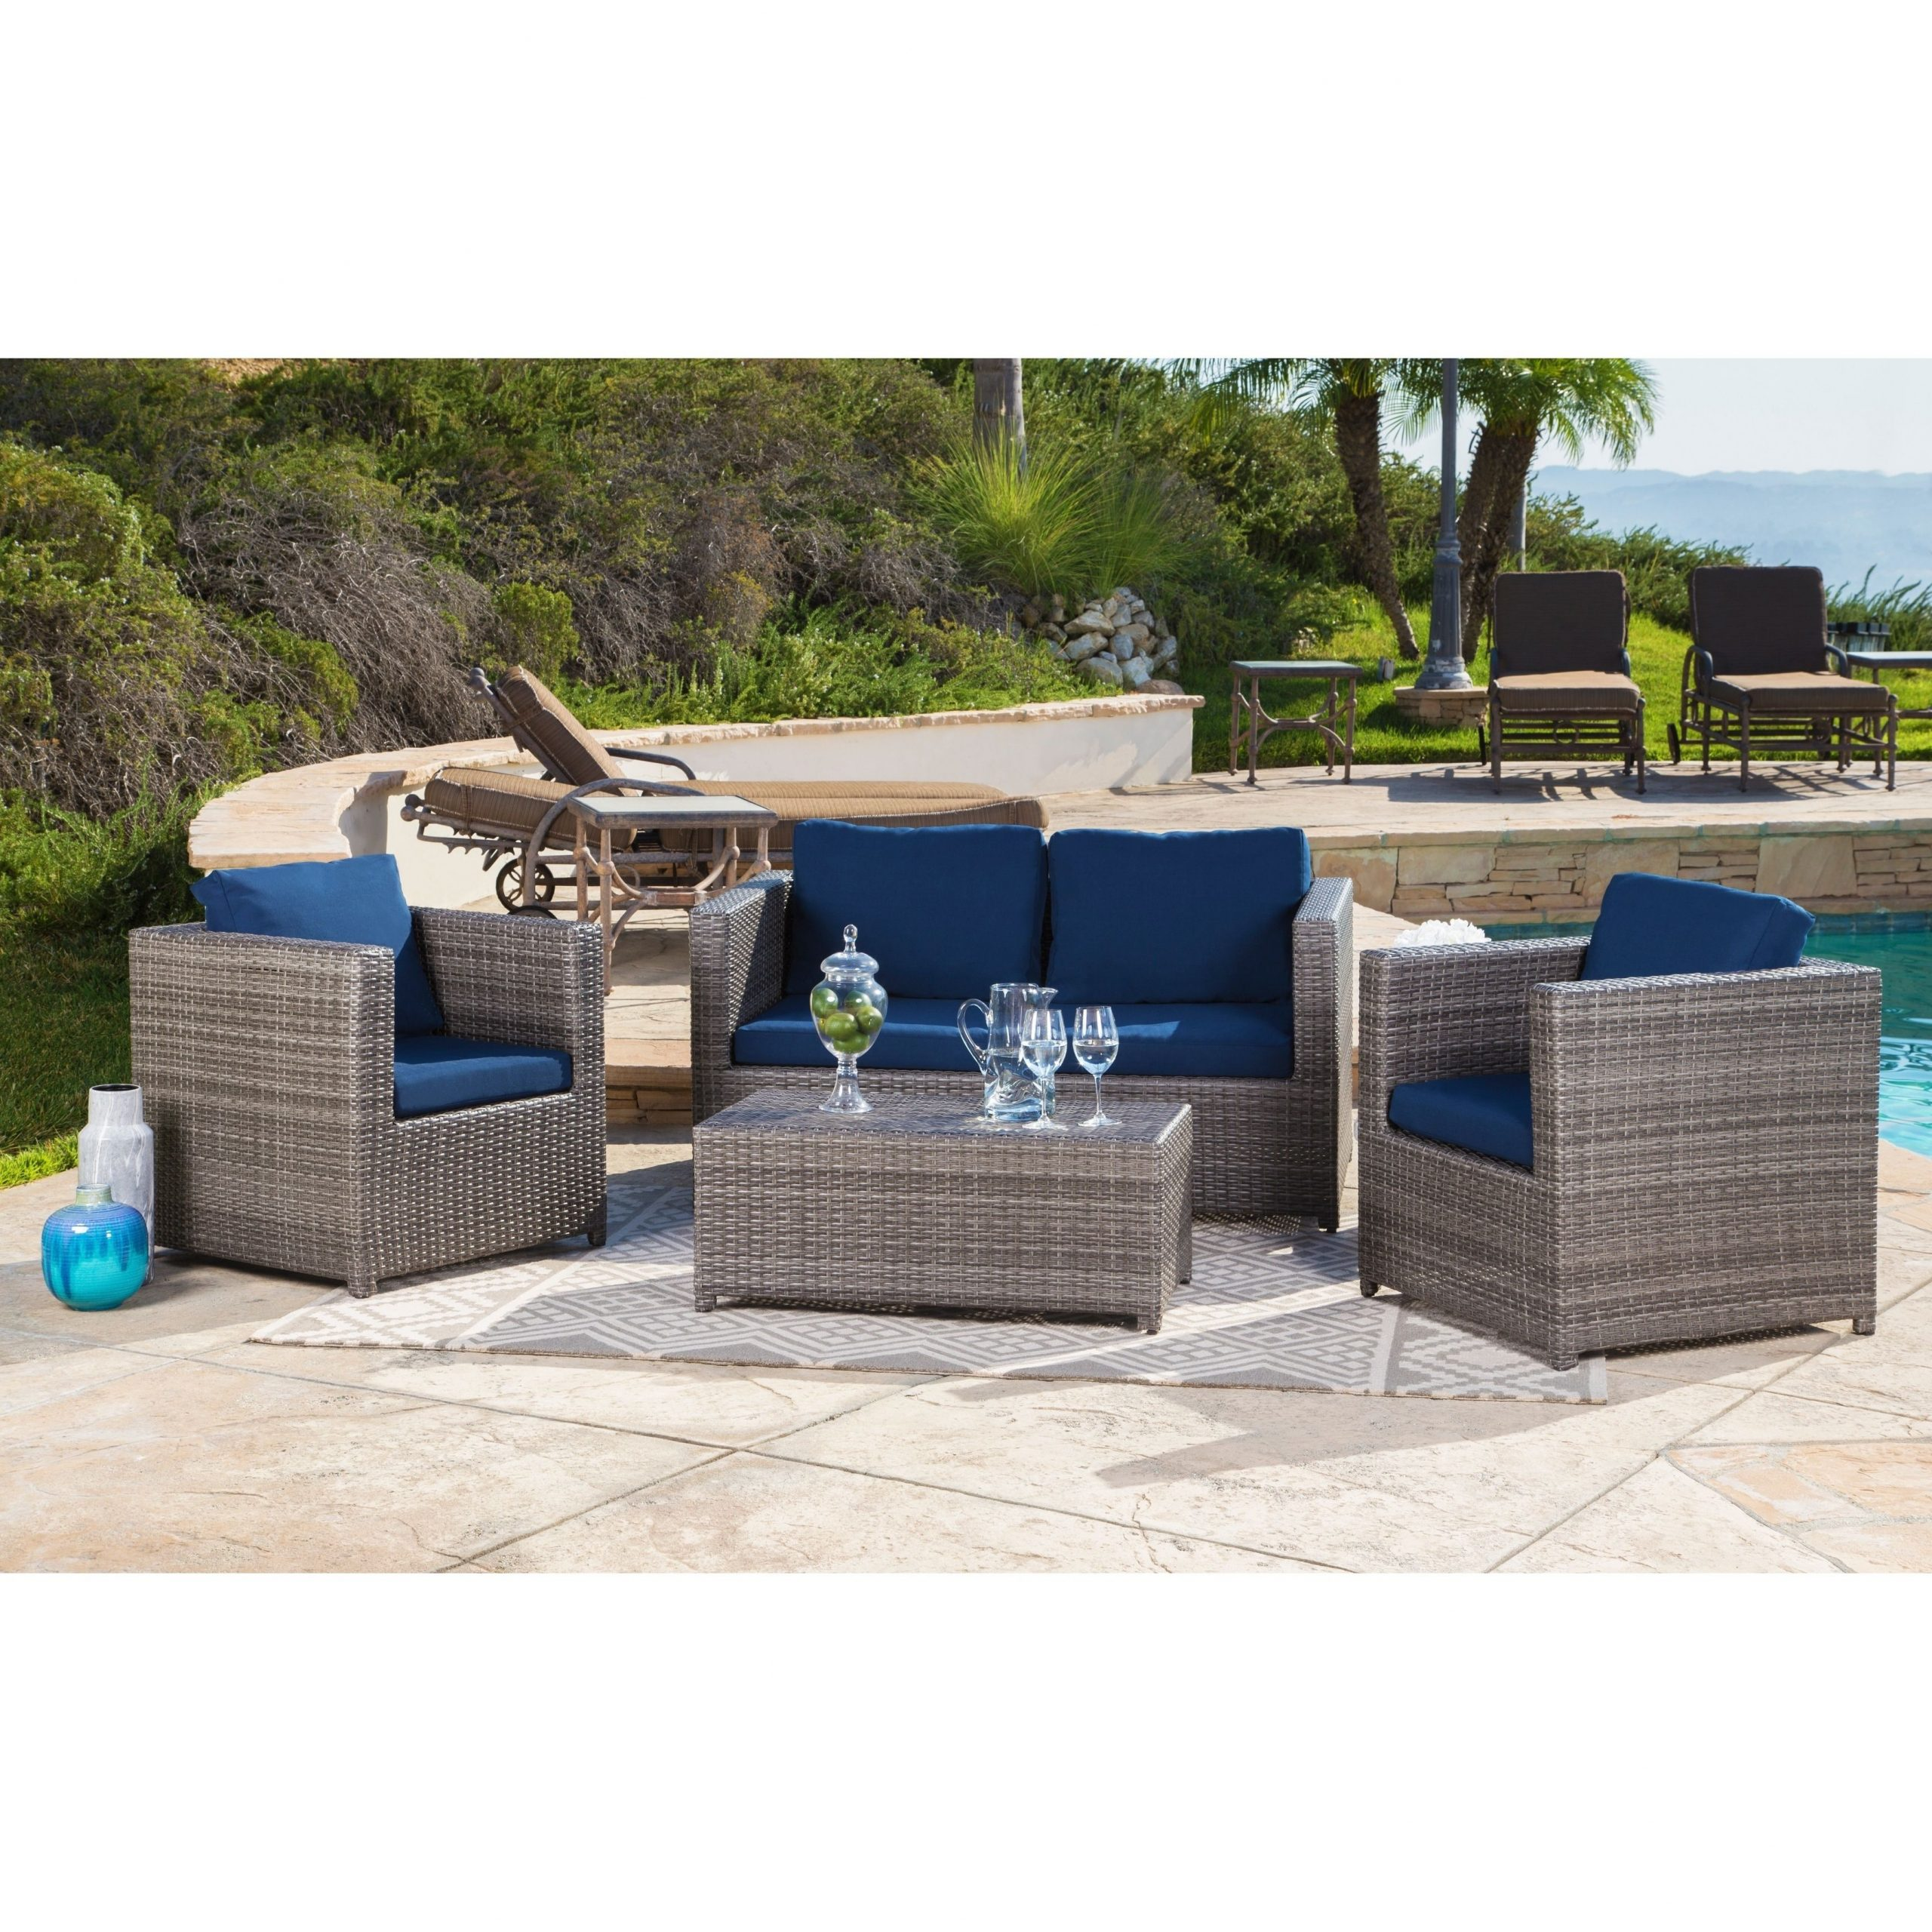 Ostrowski Patio Sectionals With Cushions Intended For Well Known Abbyson Colette Outdoor Grey Wicker 4 Piece Patio Set (View 9 of 25)